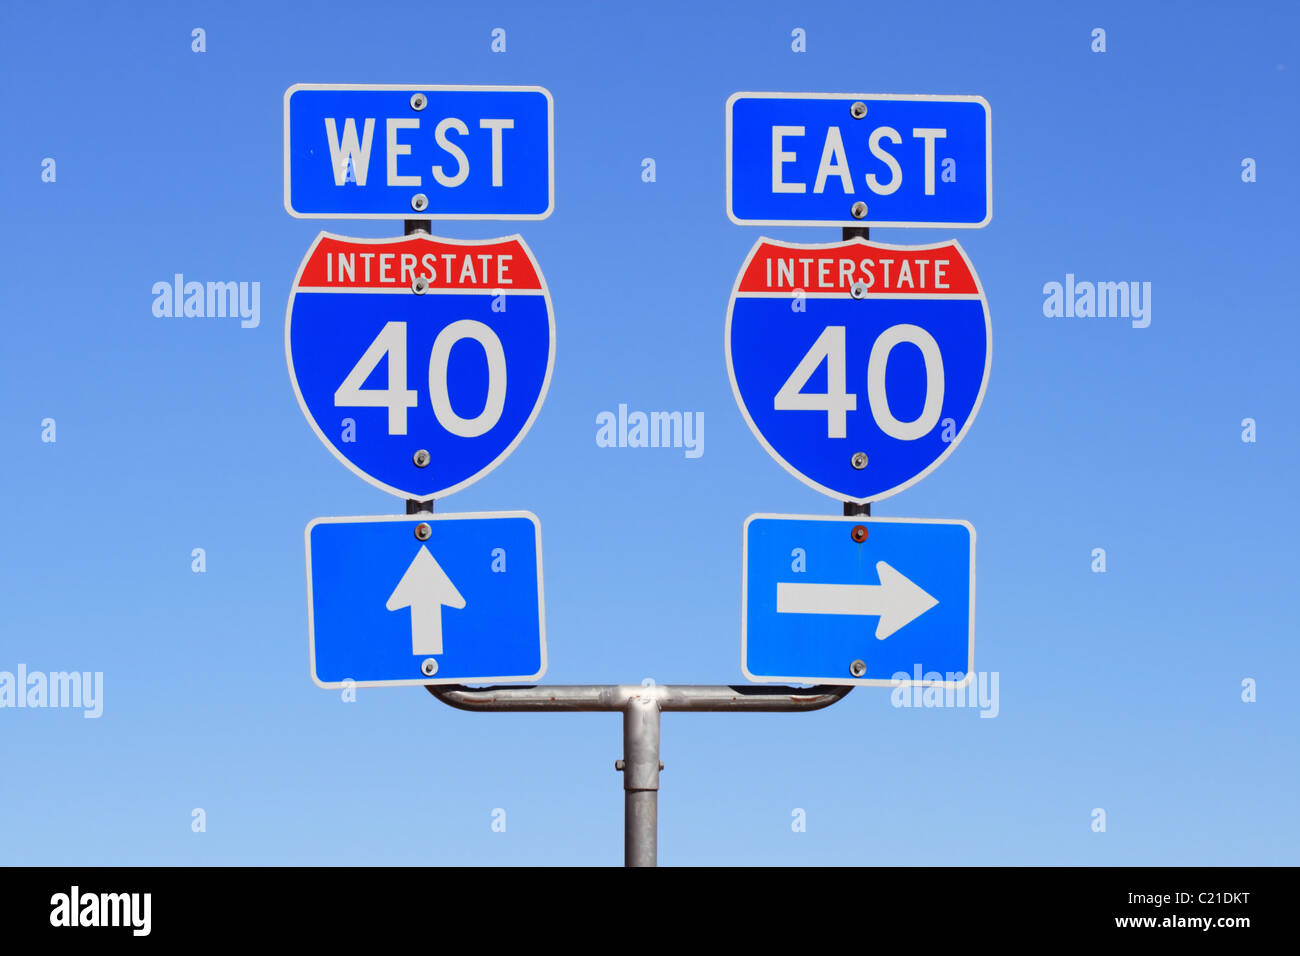 Interstate 40 Stock Photos & Interstate 40 Stock Images - Alamy